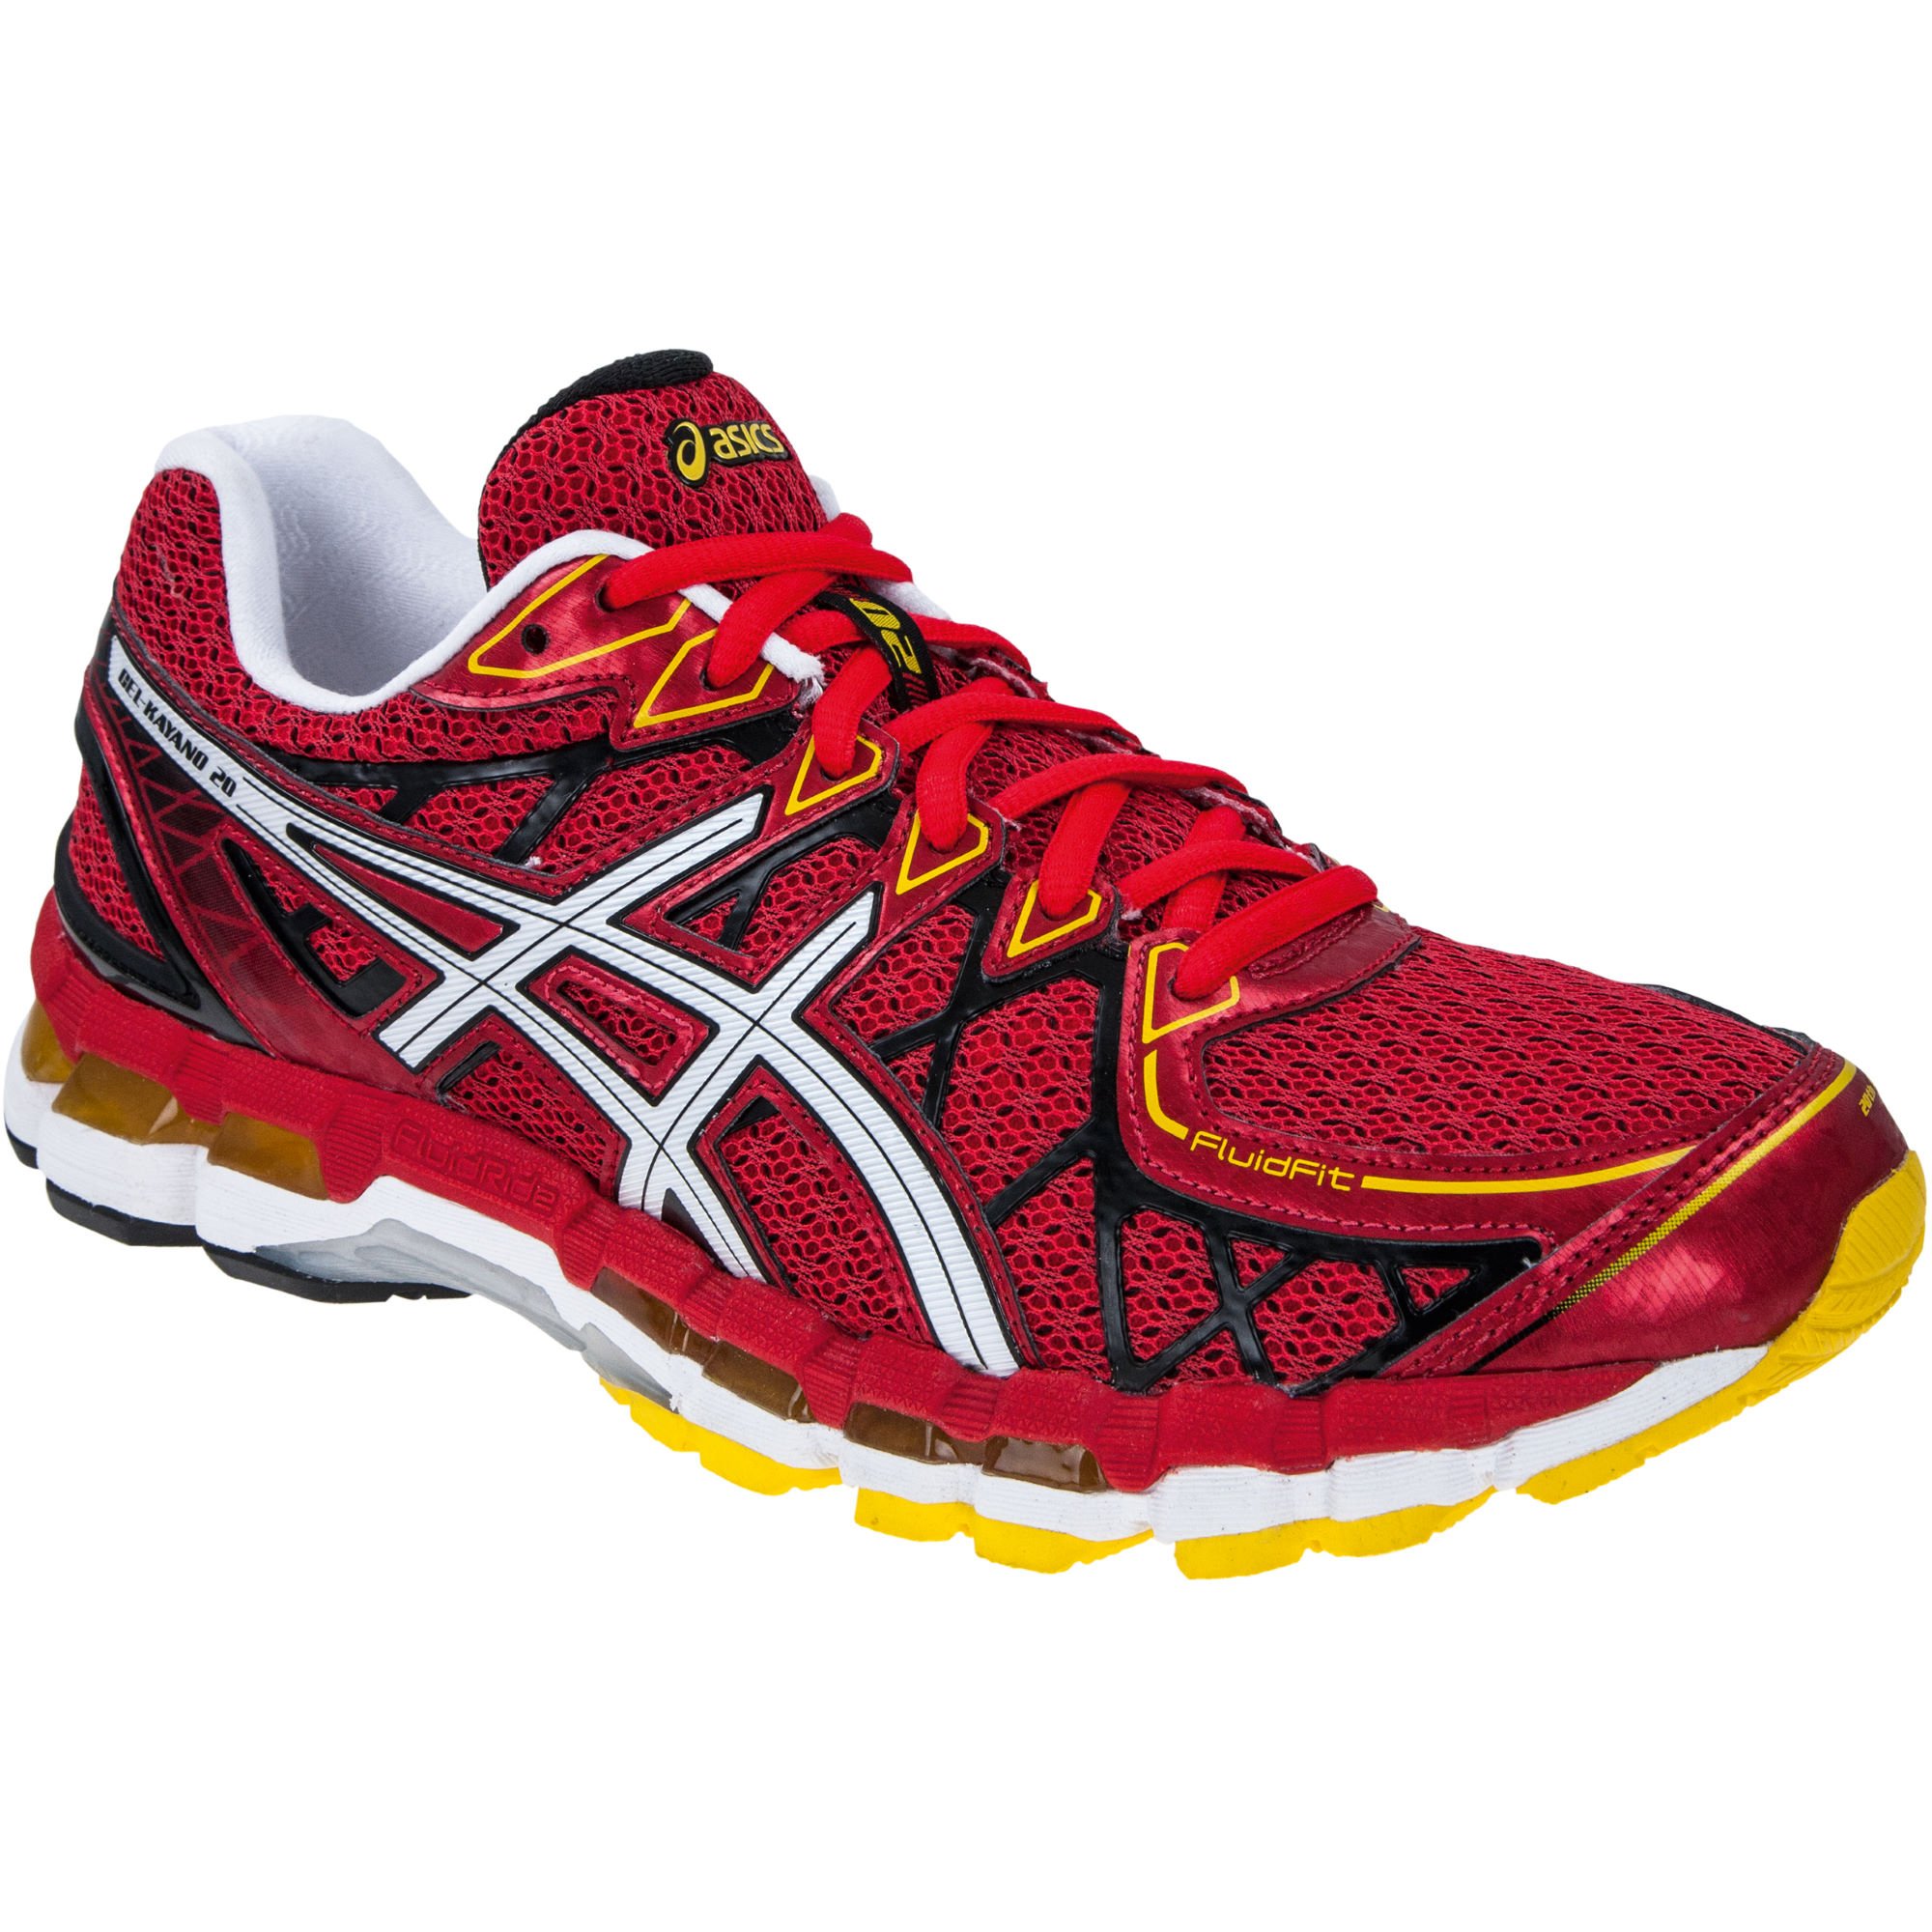 asics gel kayano 20 schuhe weite passform 2e h w 14. Black Bedroom Furniture Sets. Home Design Ideas